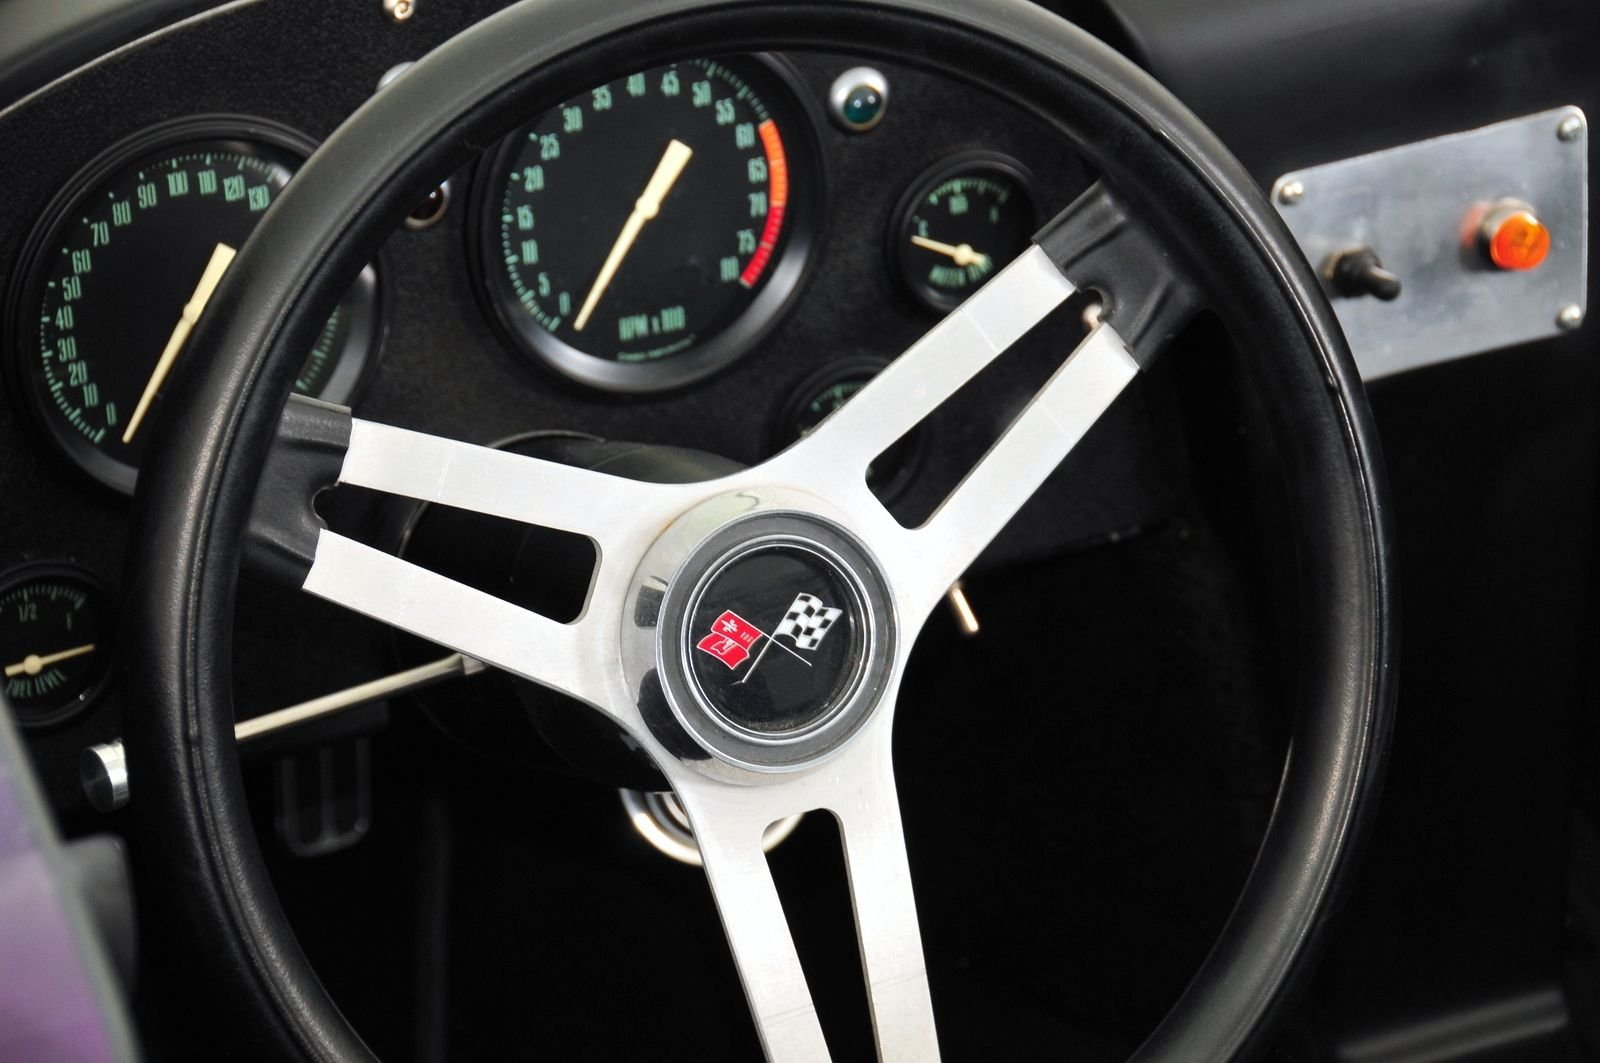 1963 Chevrolet Corvette Mongoose Motorsports Grand Sport Fast Five interior steering wheel